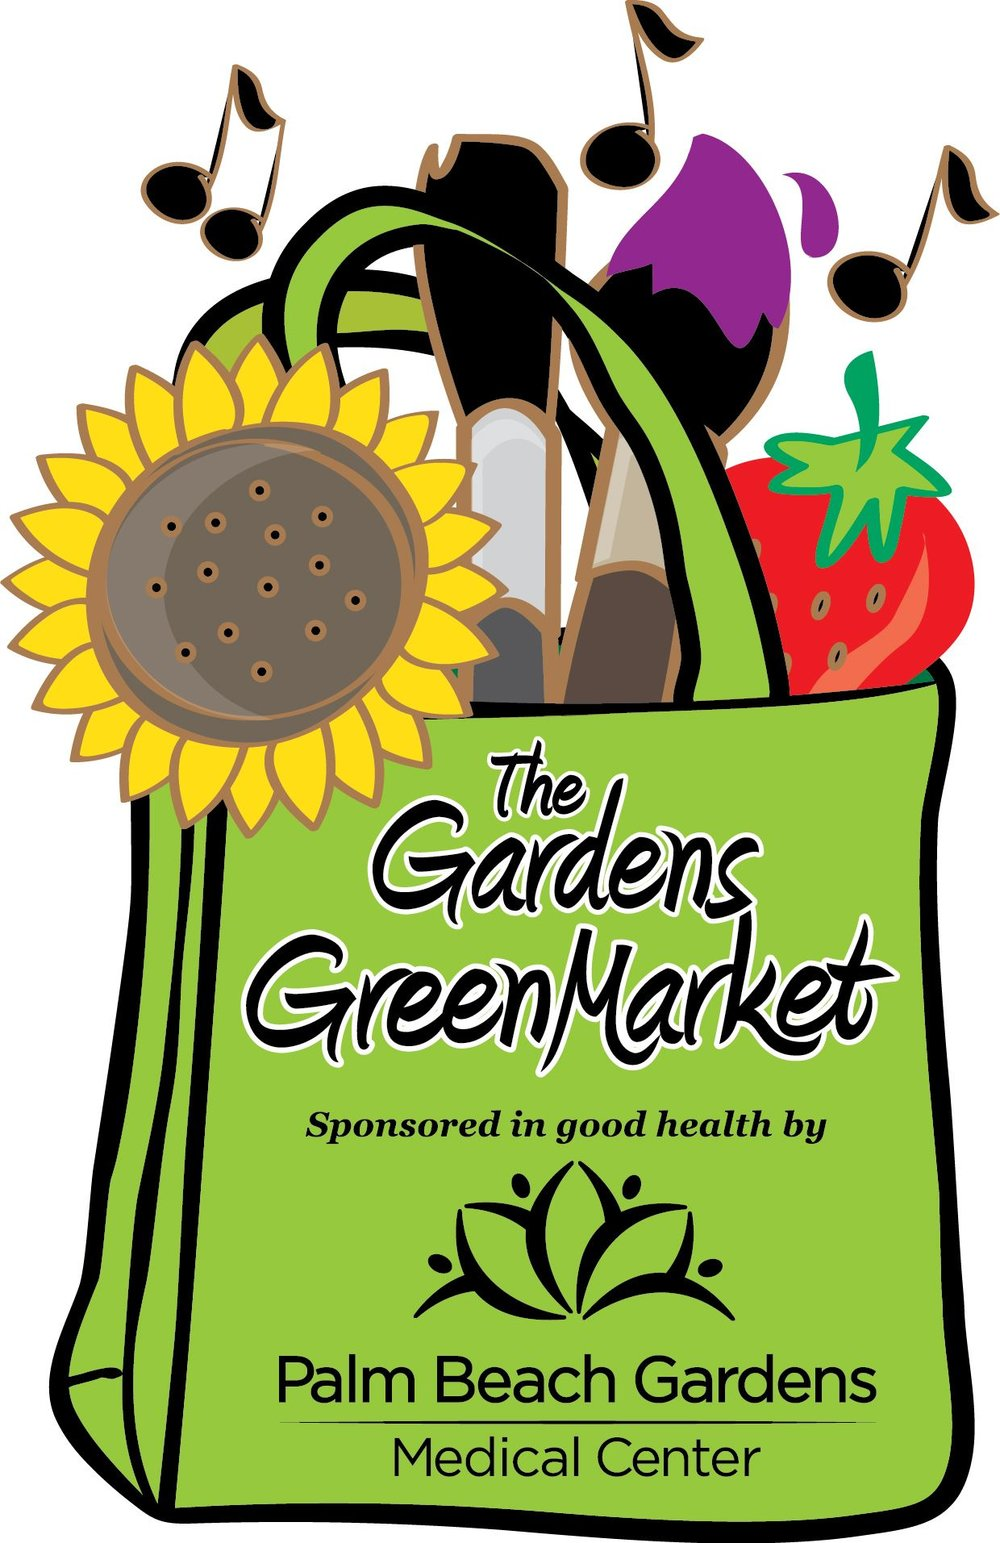 The Gardens GreenMarket Sundays 8am-1pm